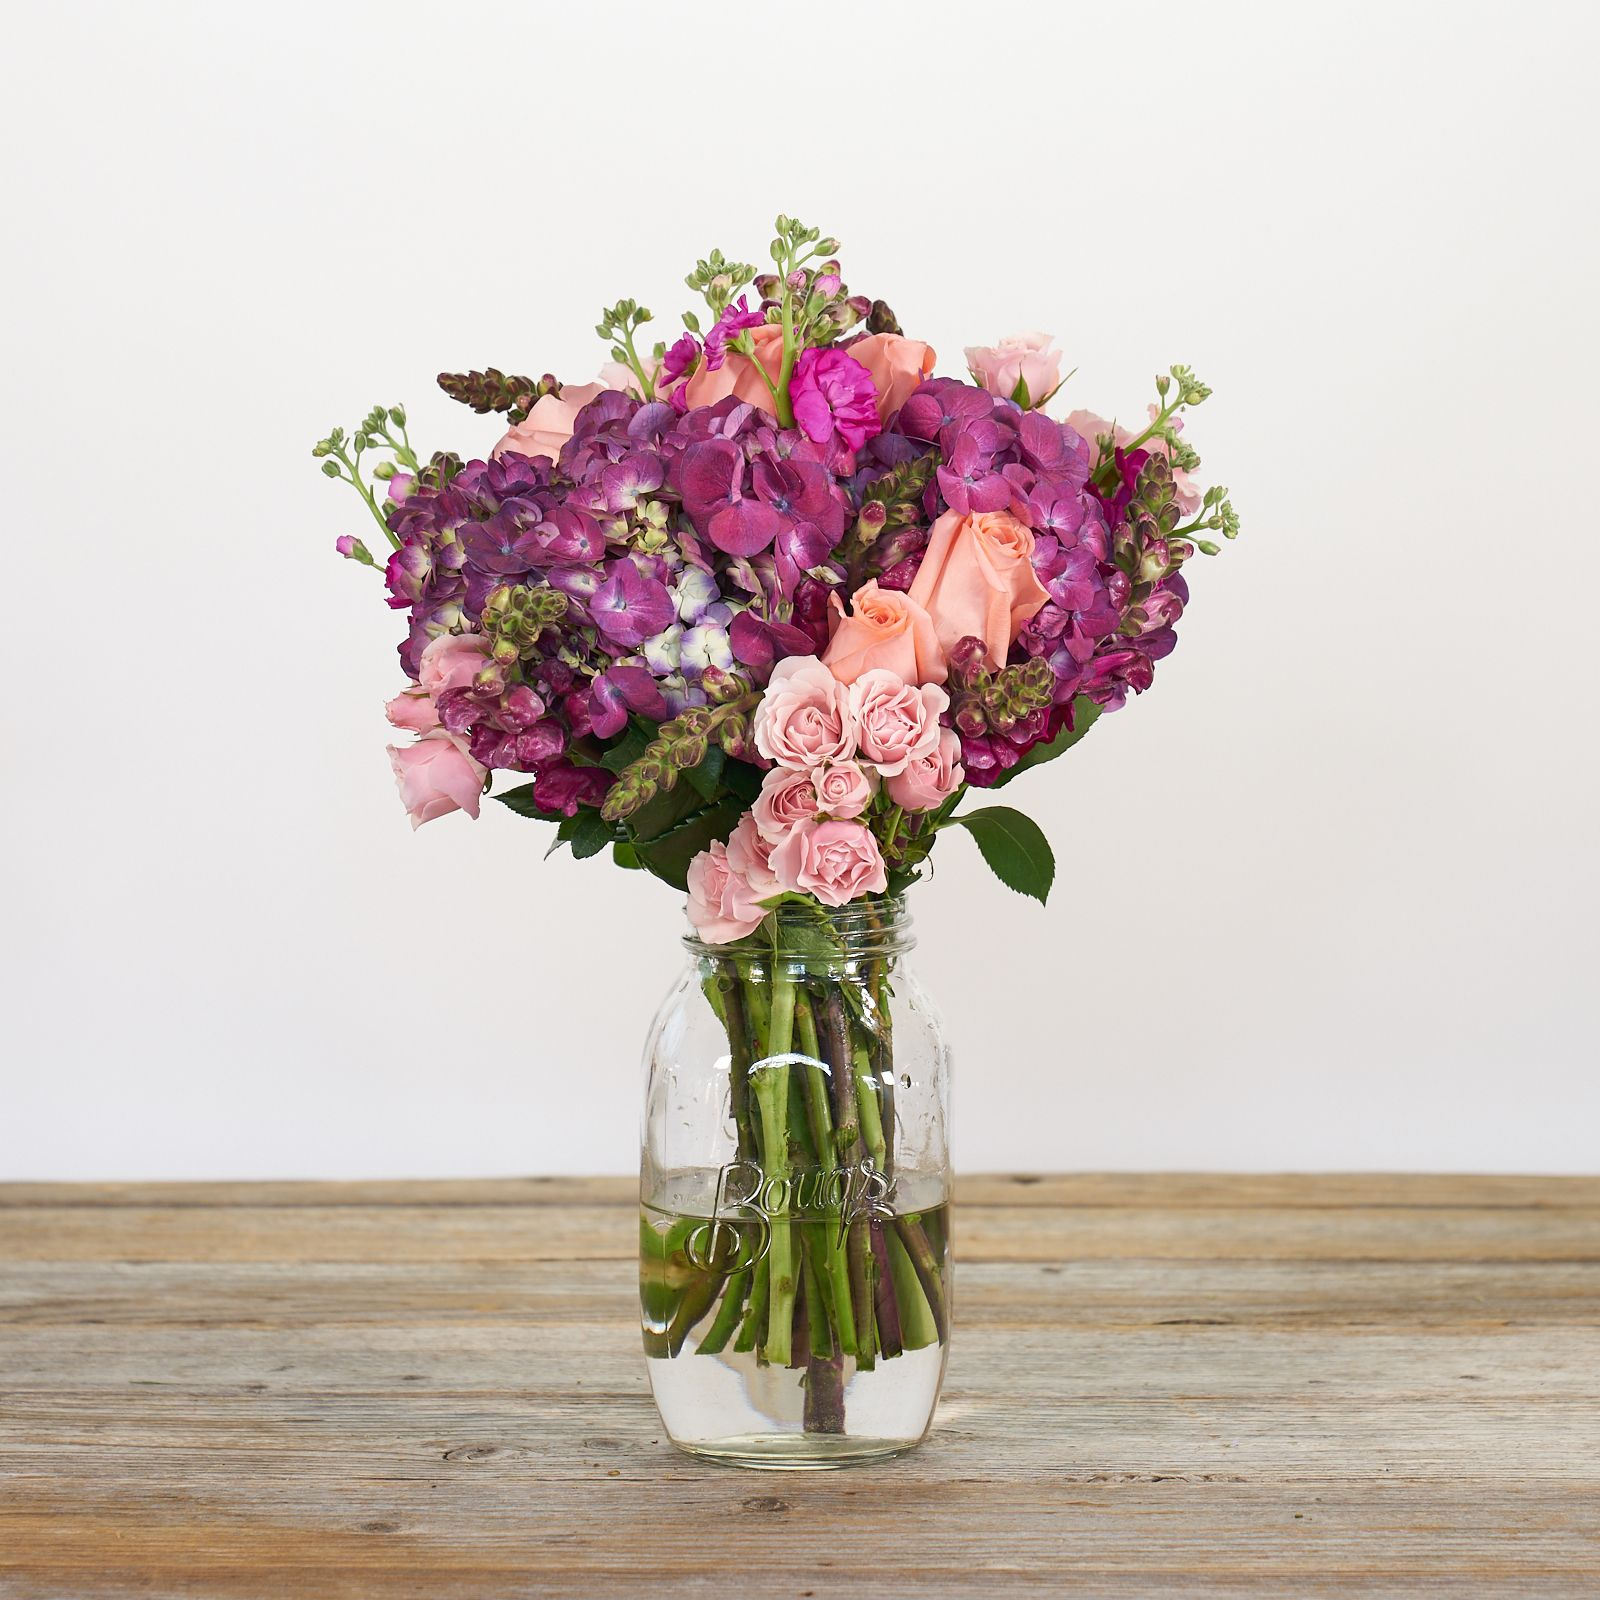 20 Best Mother\'s Day Flower Delivery Services - Where to Buy ...